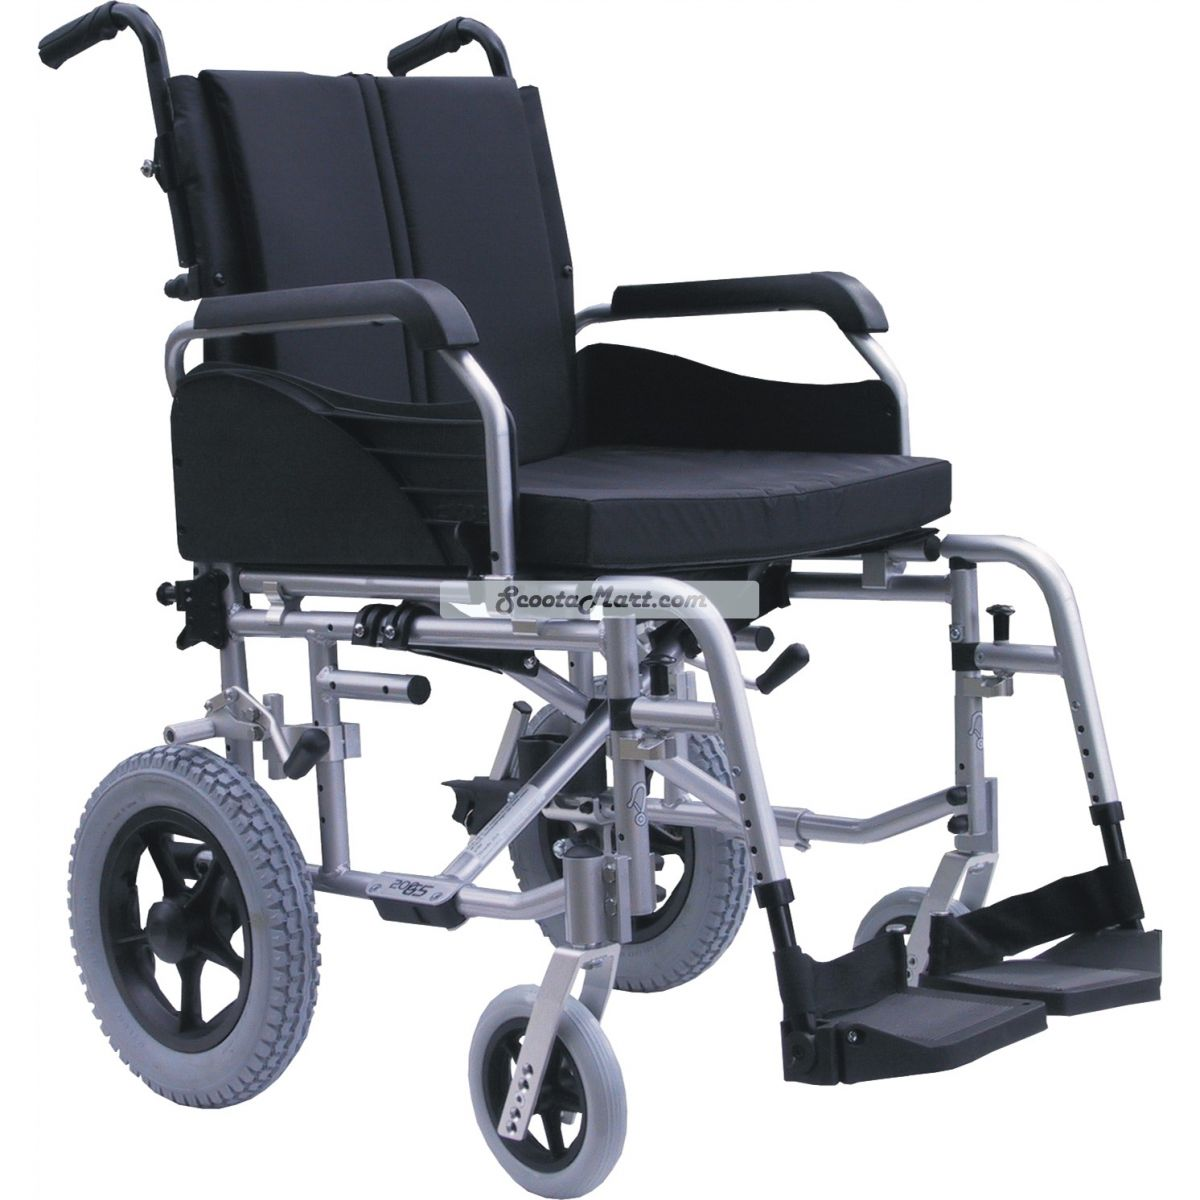 New wheelchair hire service for Knowsley